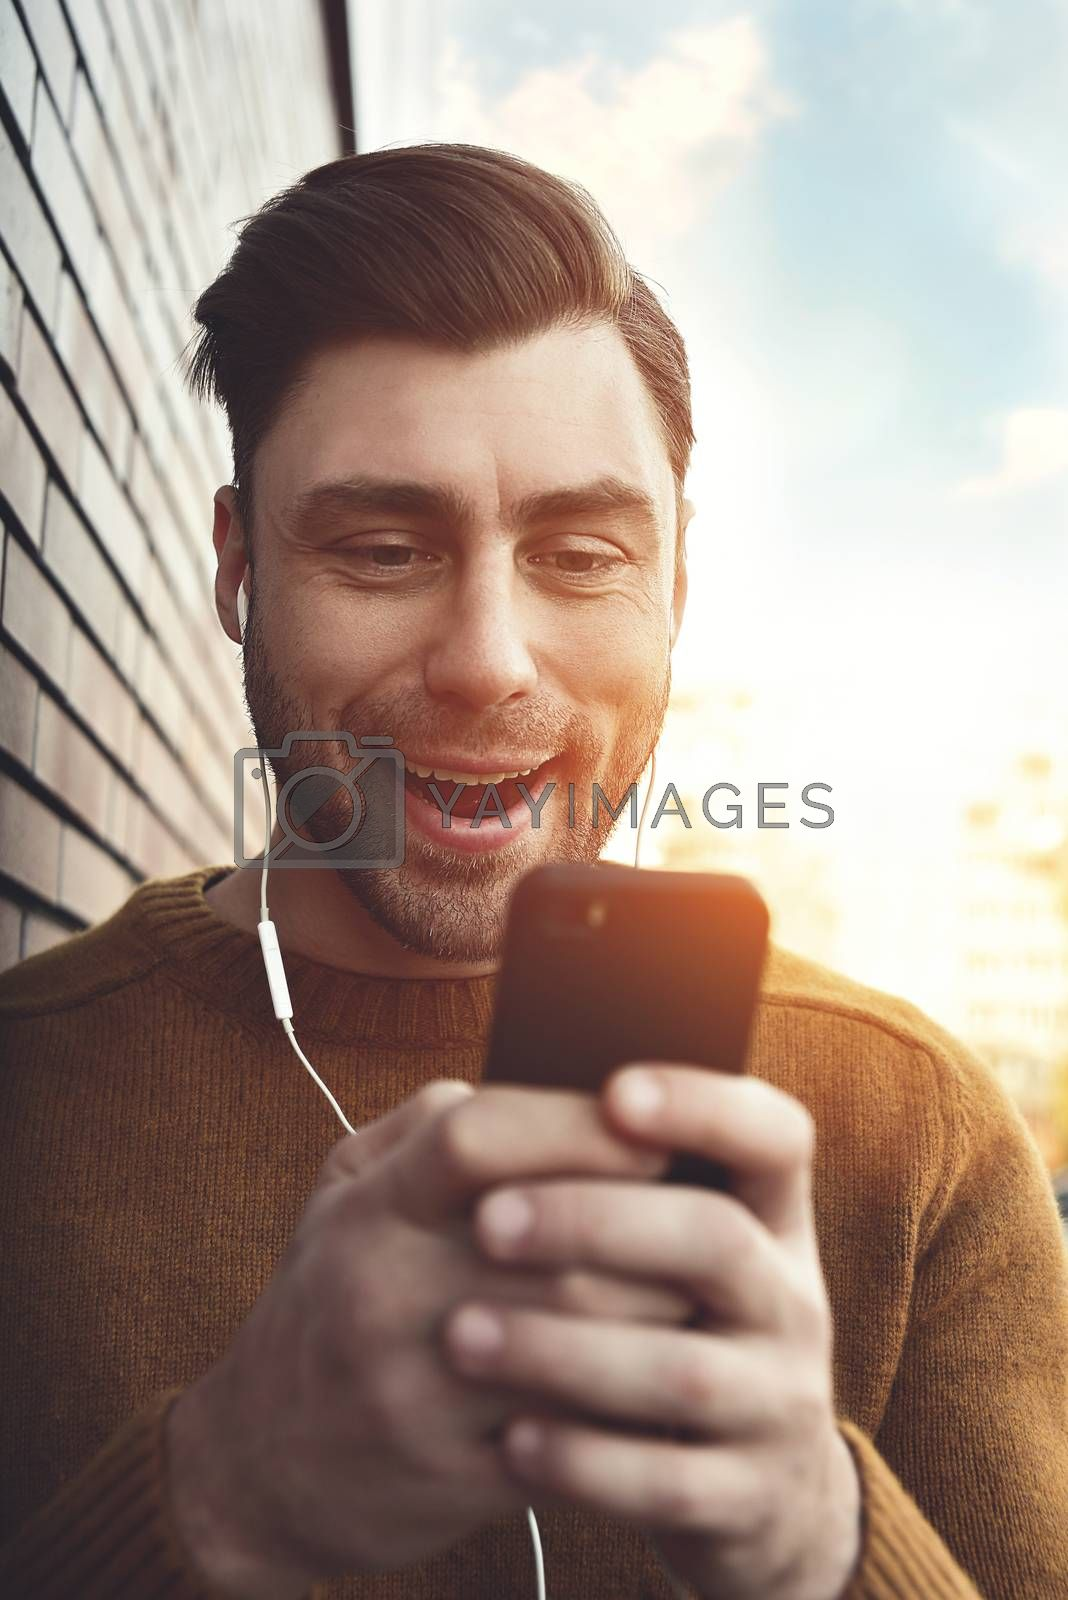 Smiling man listening to music on headphones and leaning against brick wall. Portrait of smiling man with headphones and cellphone standing by brick wall.